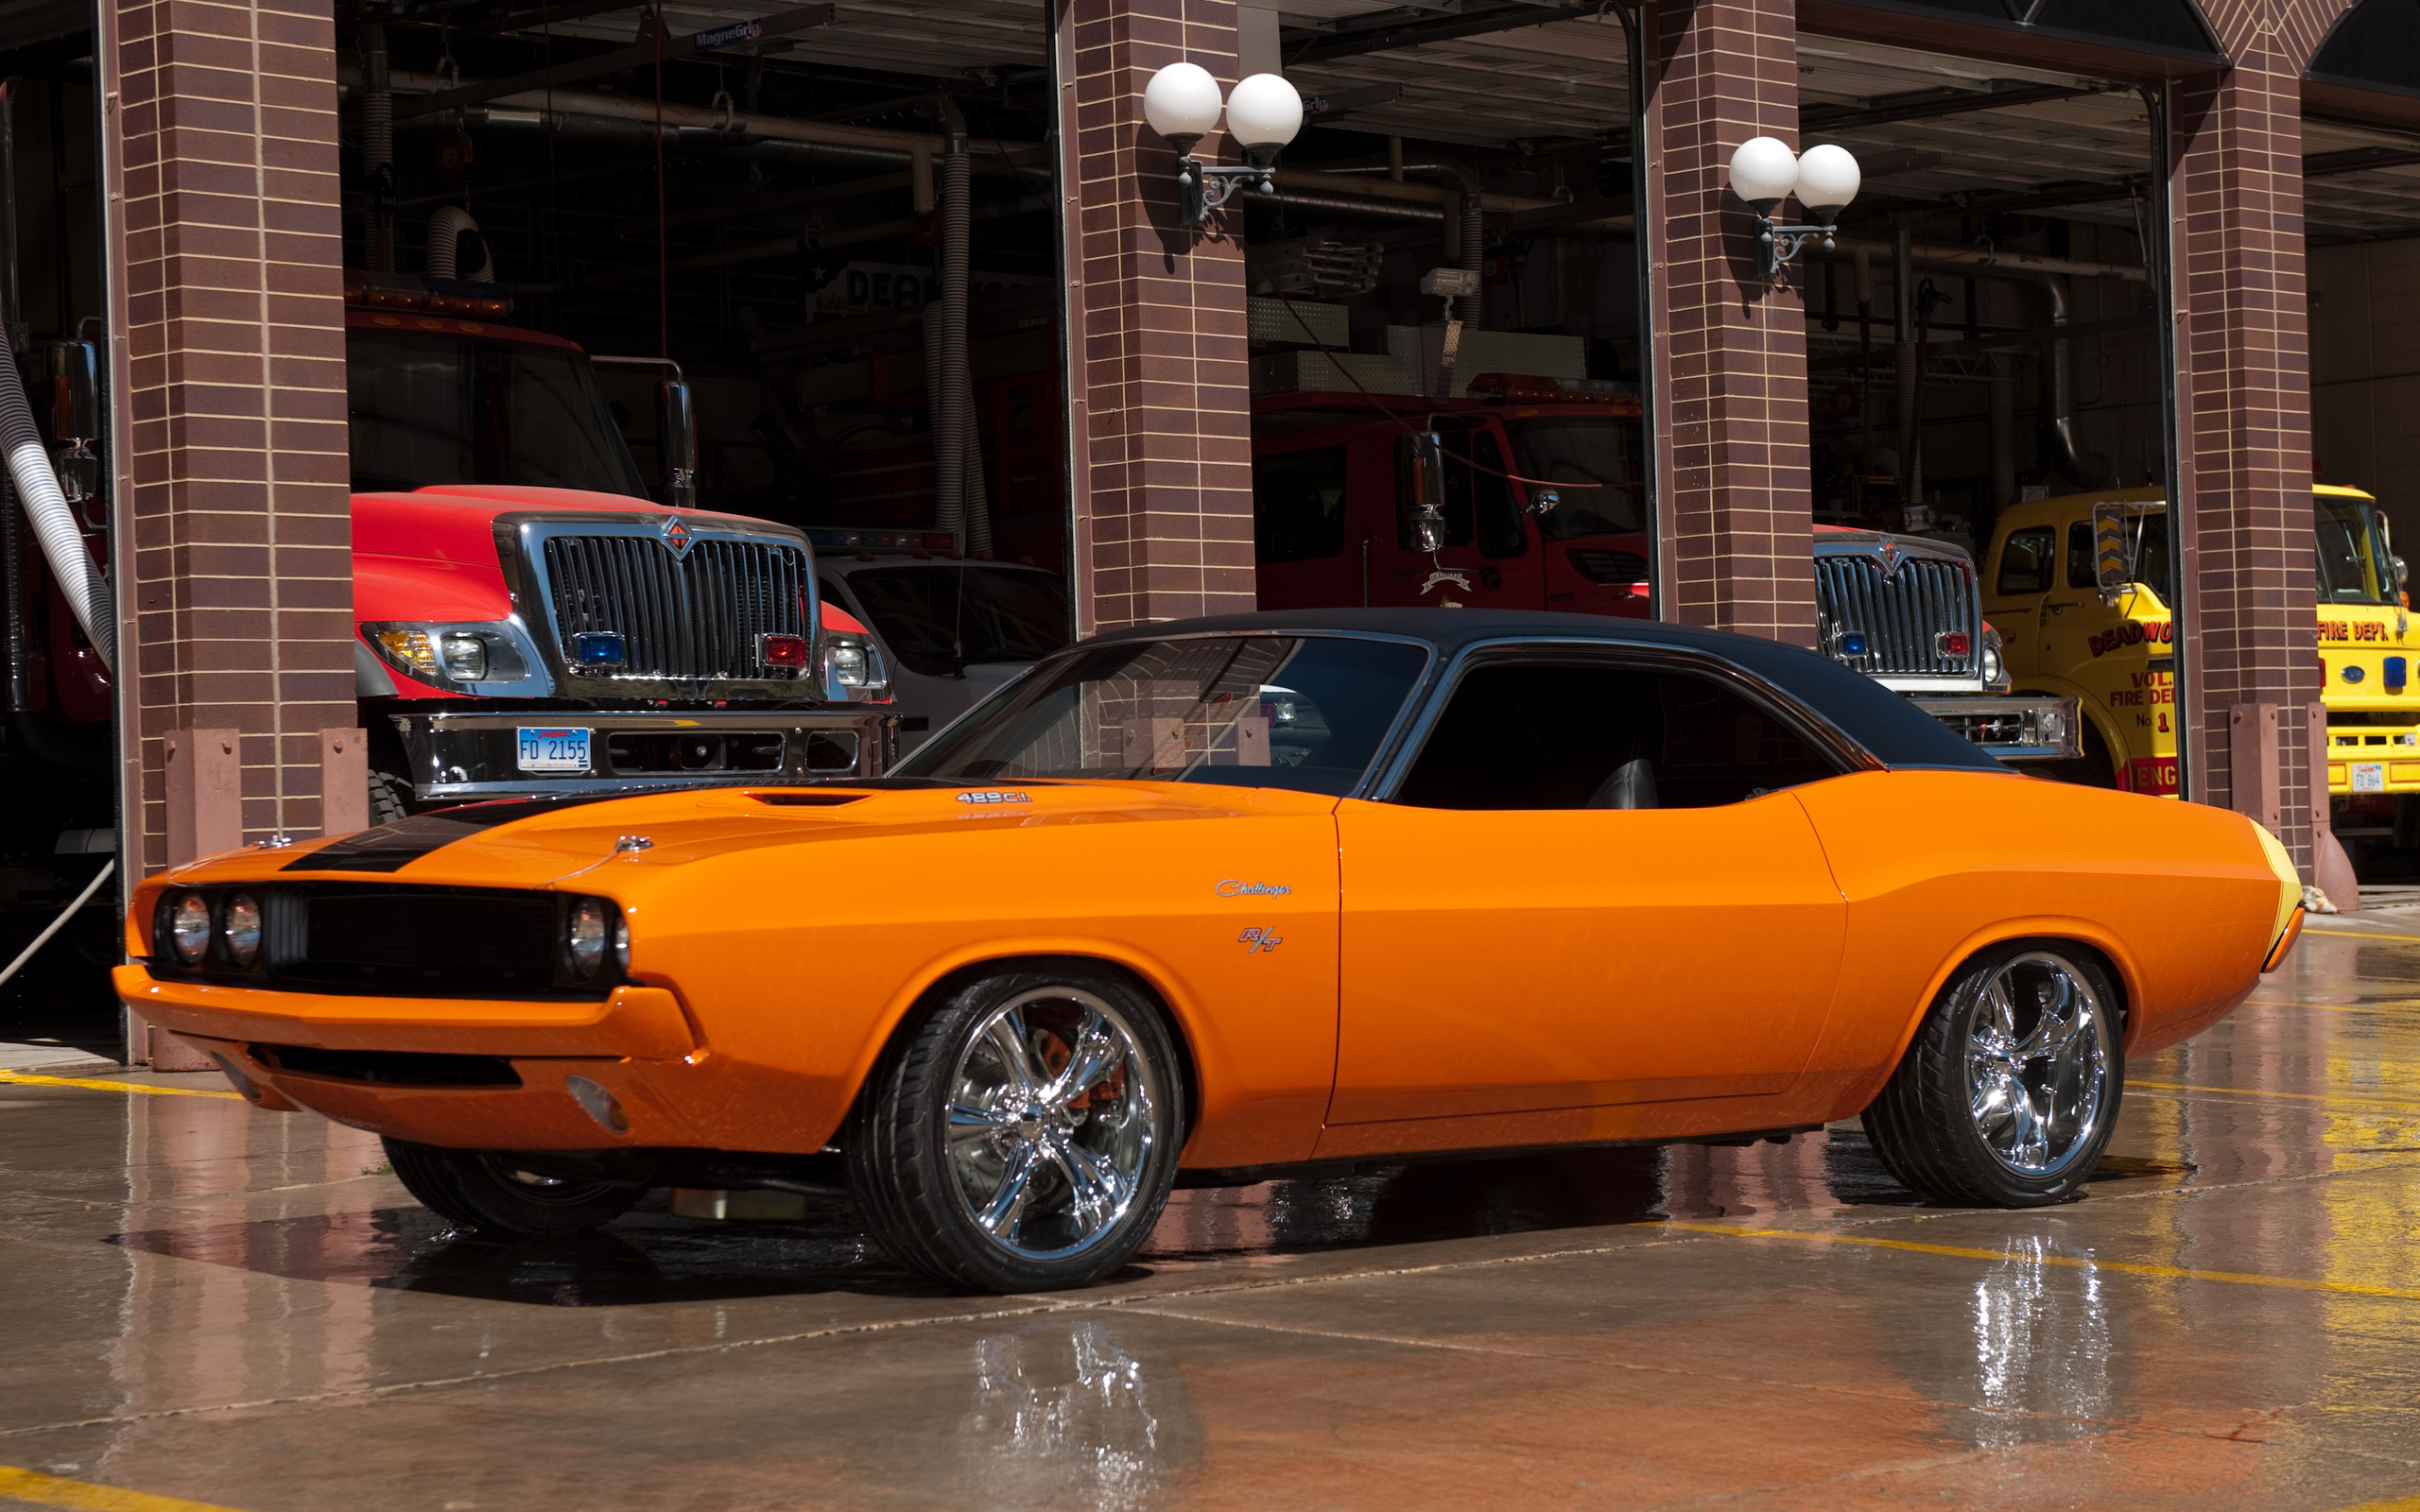 Dodge Challenger Vs Charger >> Dodge Challenger Full HD Wallpaper and Background | 2560x1600 | ID:152206